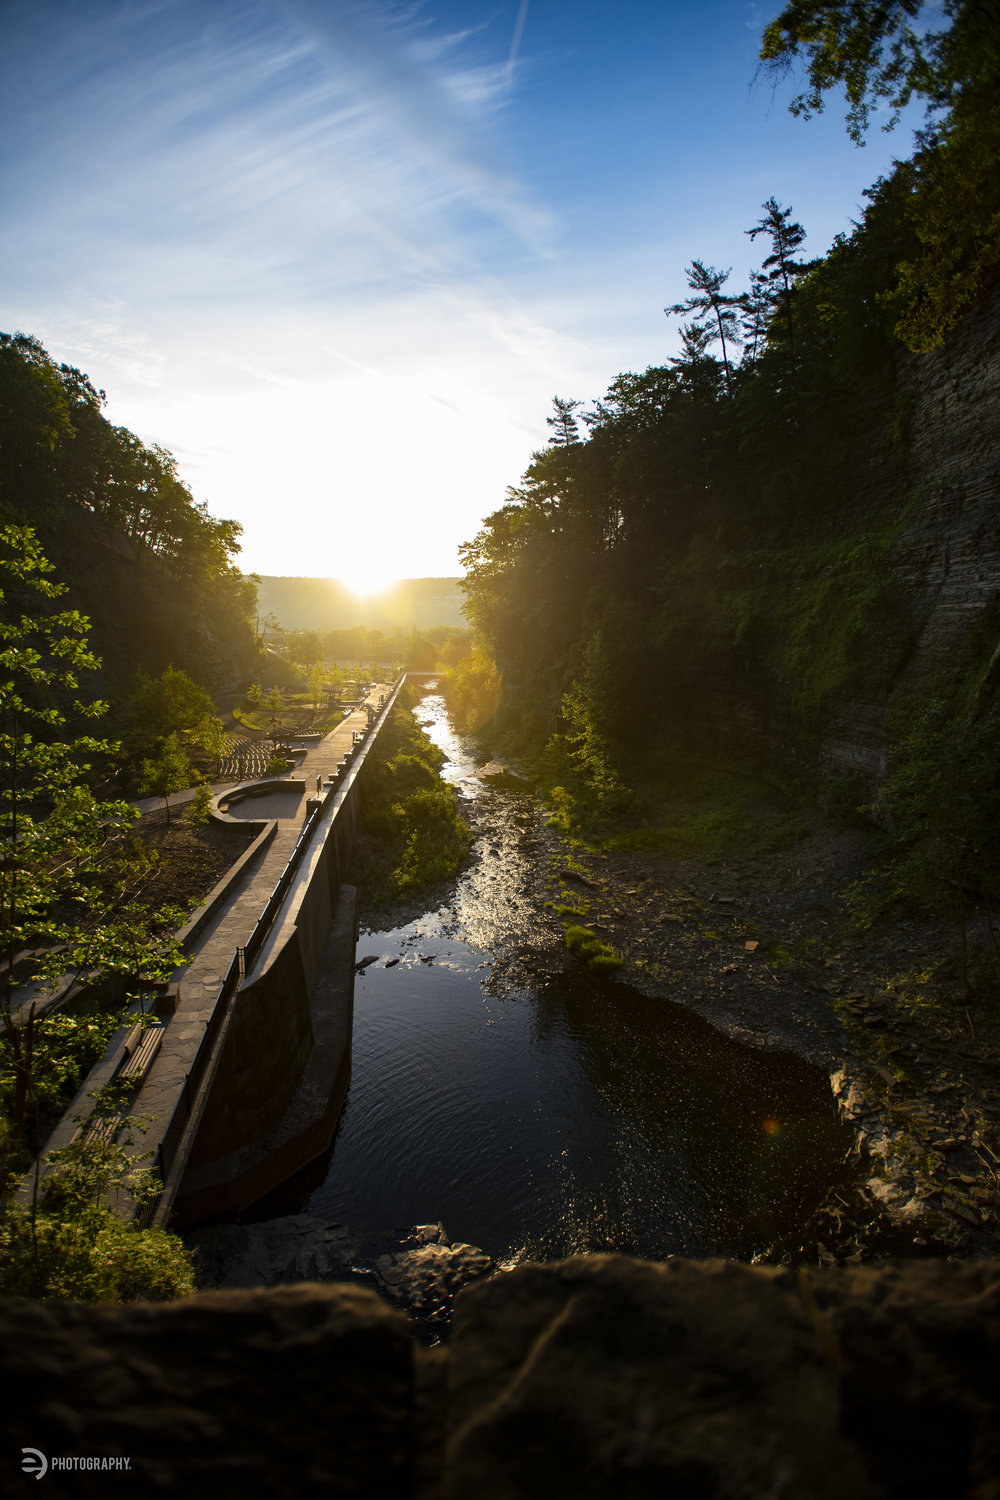 Looking back toward the main entrance to Watkins Glen State Park from Sentry Bridge at first light.